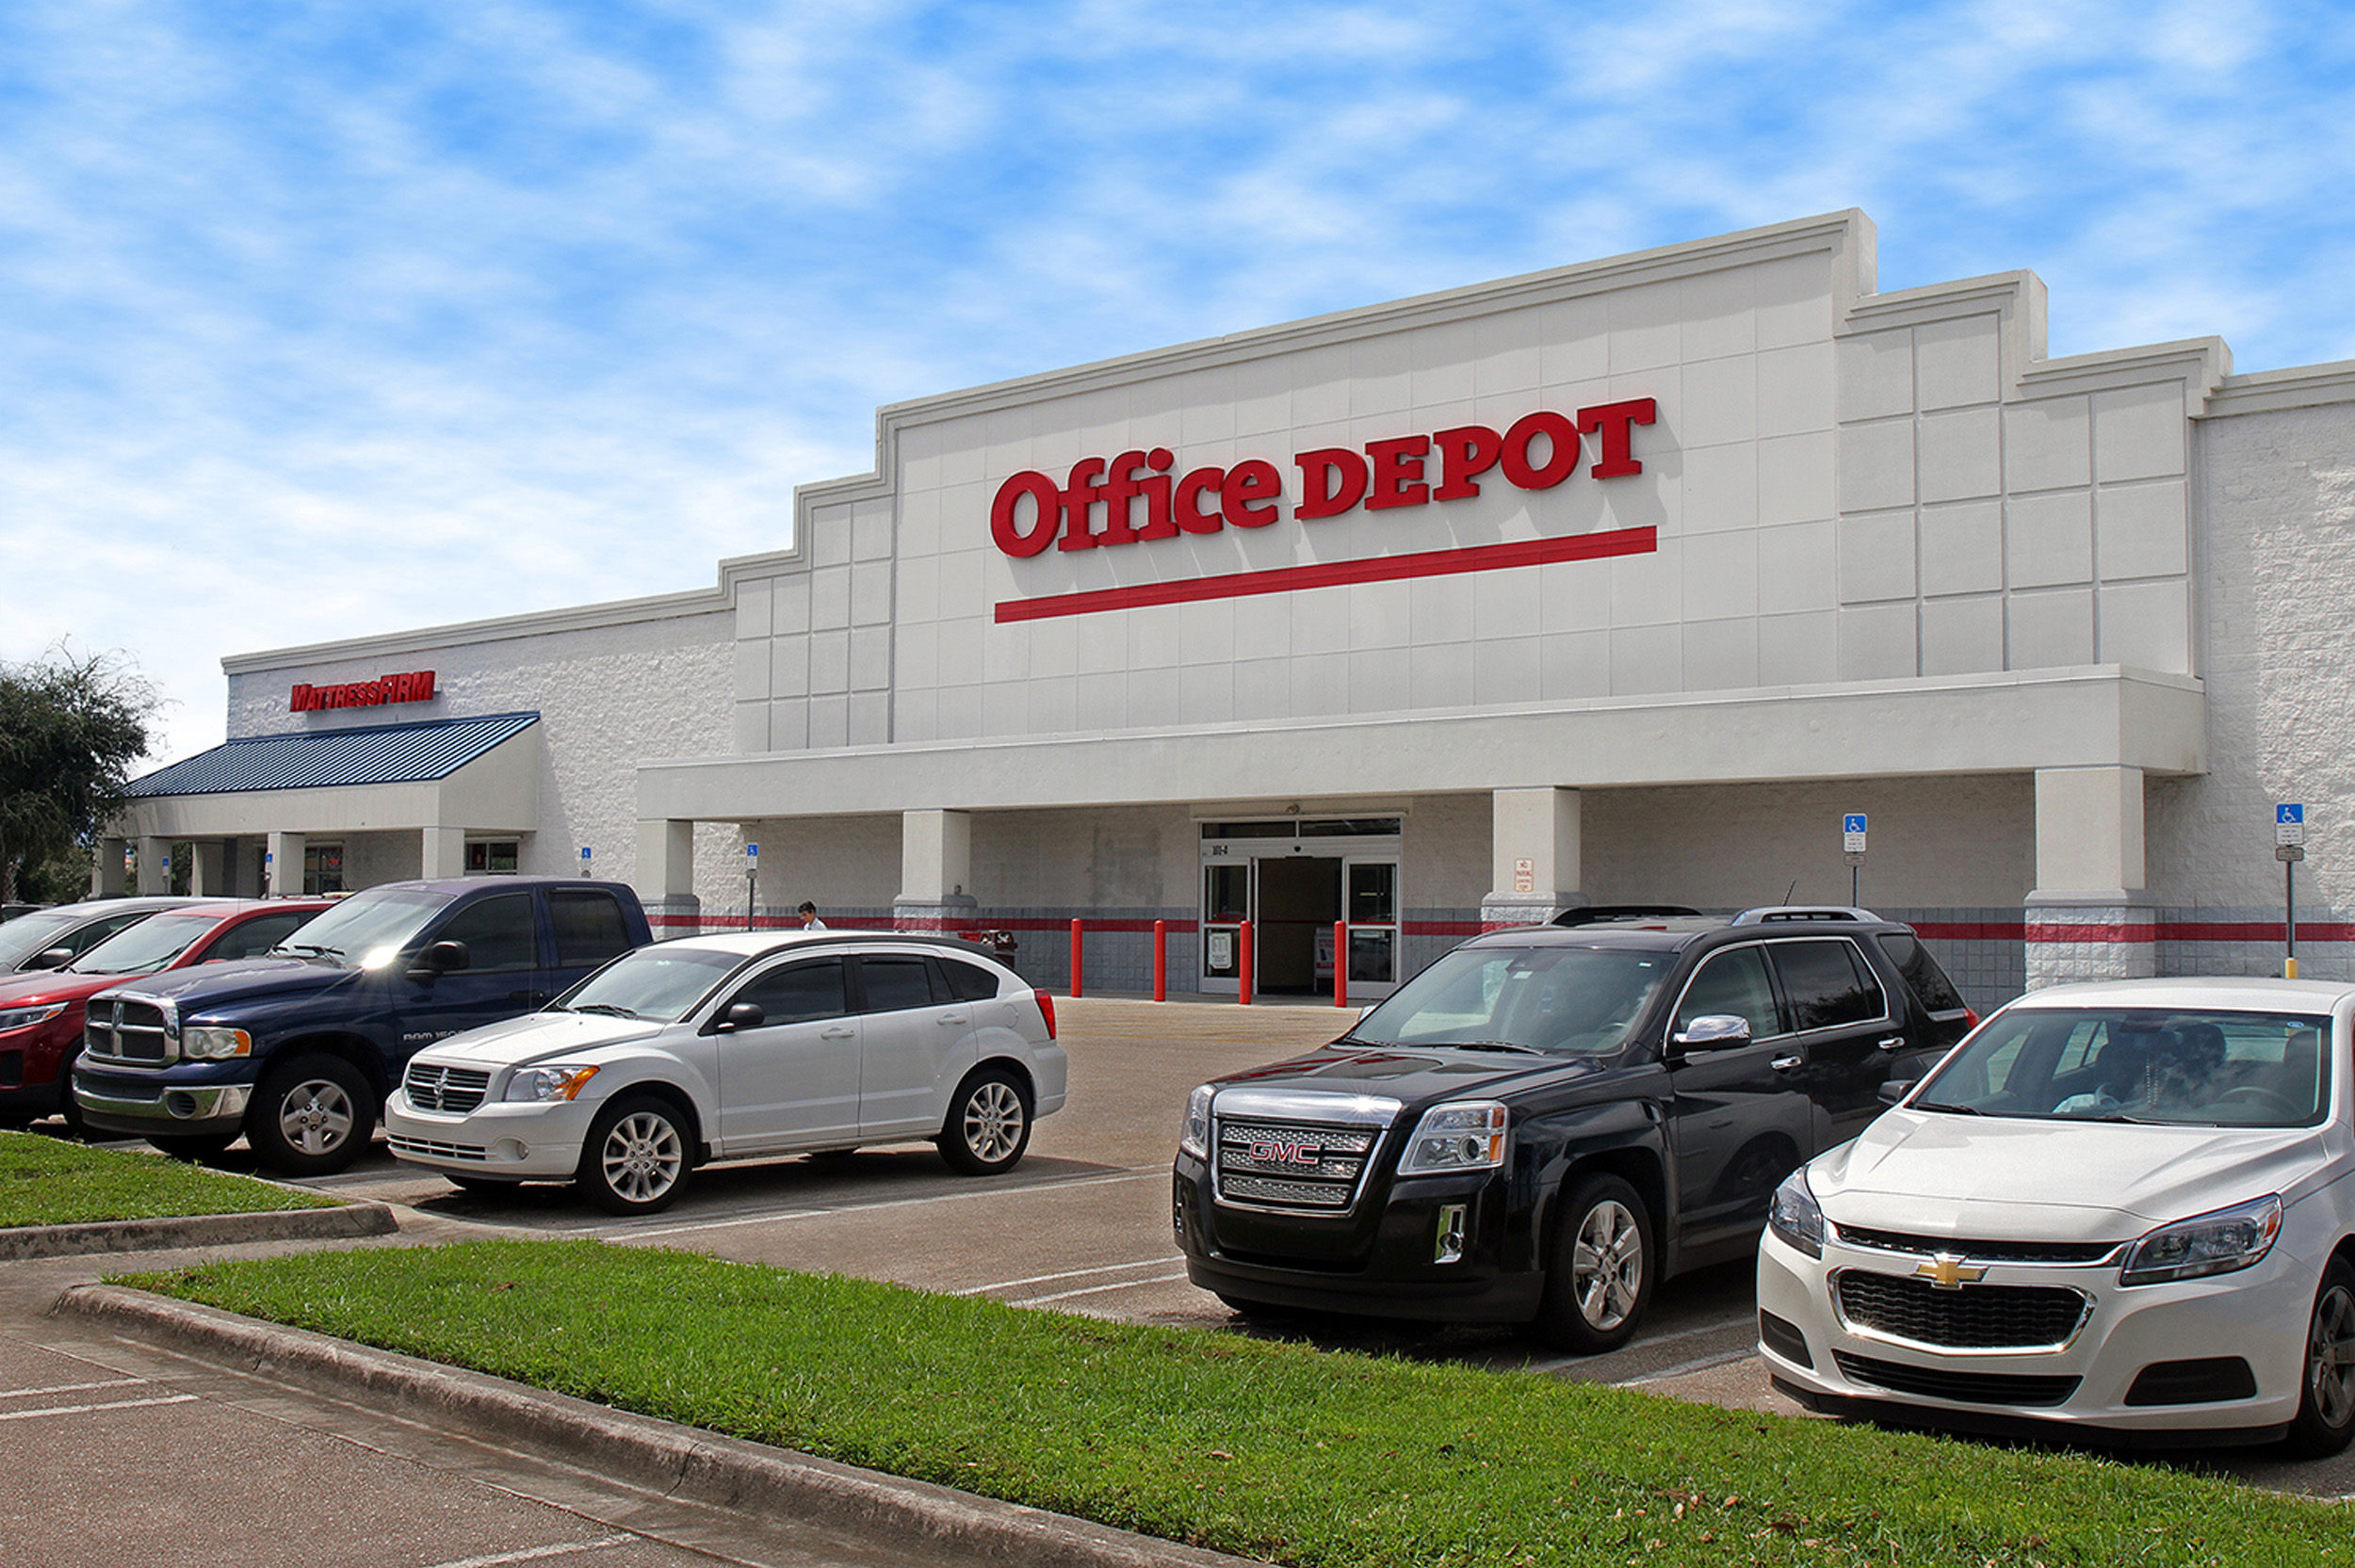 OFFICE DEPOT HEADQUARTERS Address & Corporate Office Phone Number